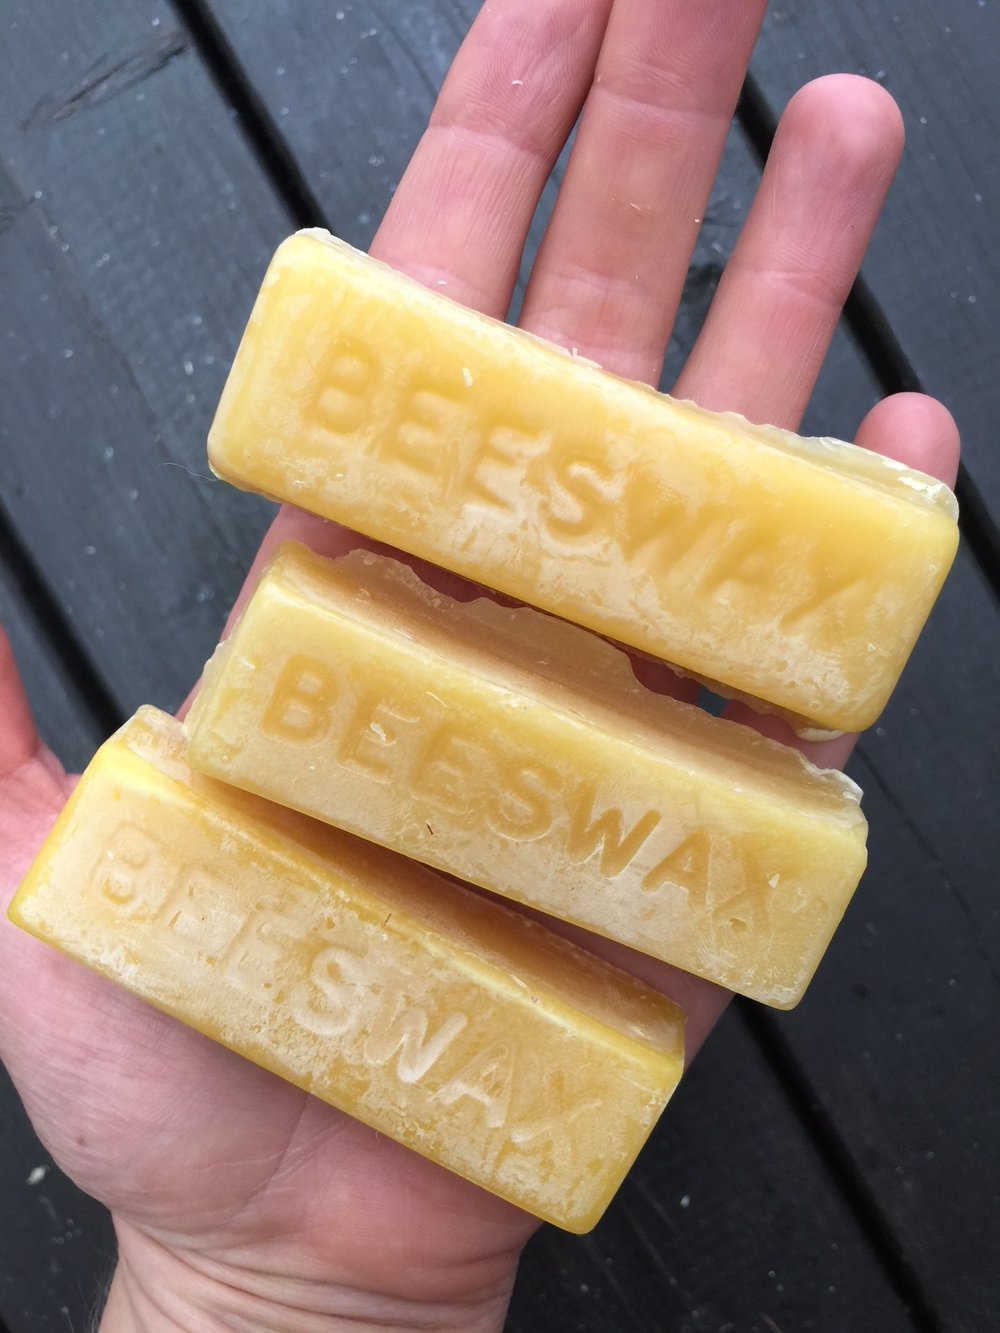 natural wildcrafted beeswax! you can find it at your local health store (or online).